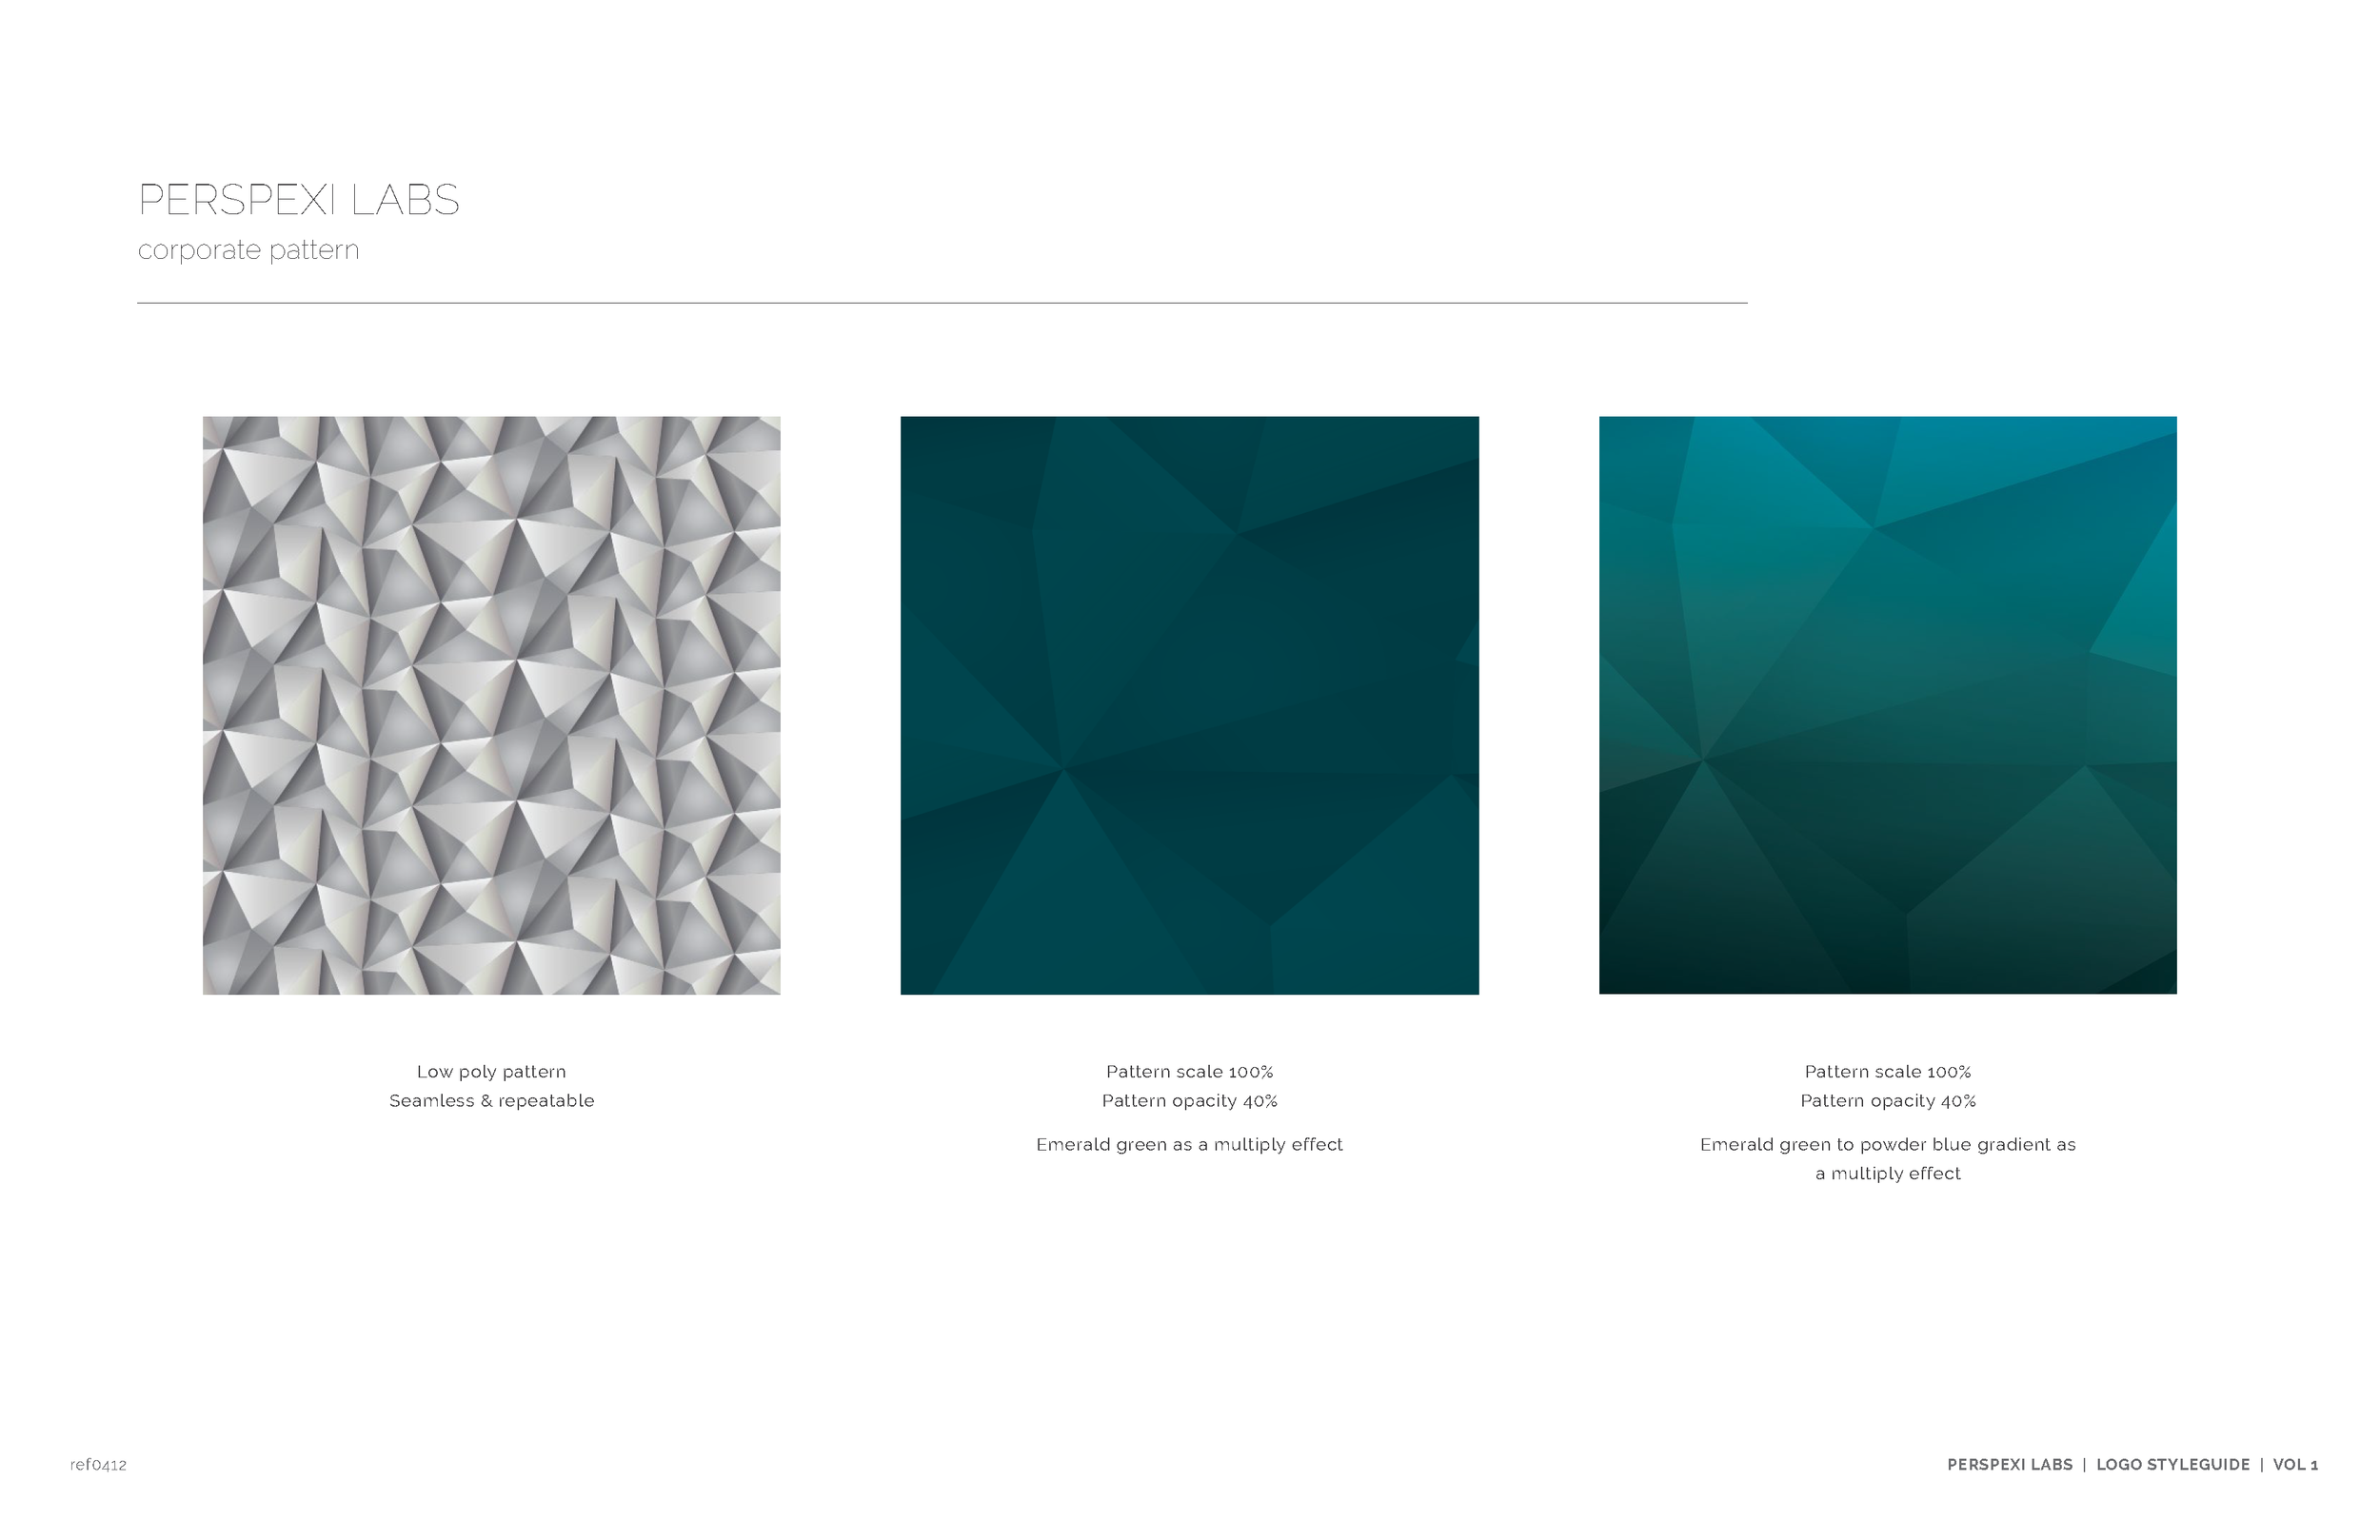 0412_StyleGuide_PerspexiLabs_Page_11.png